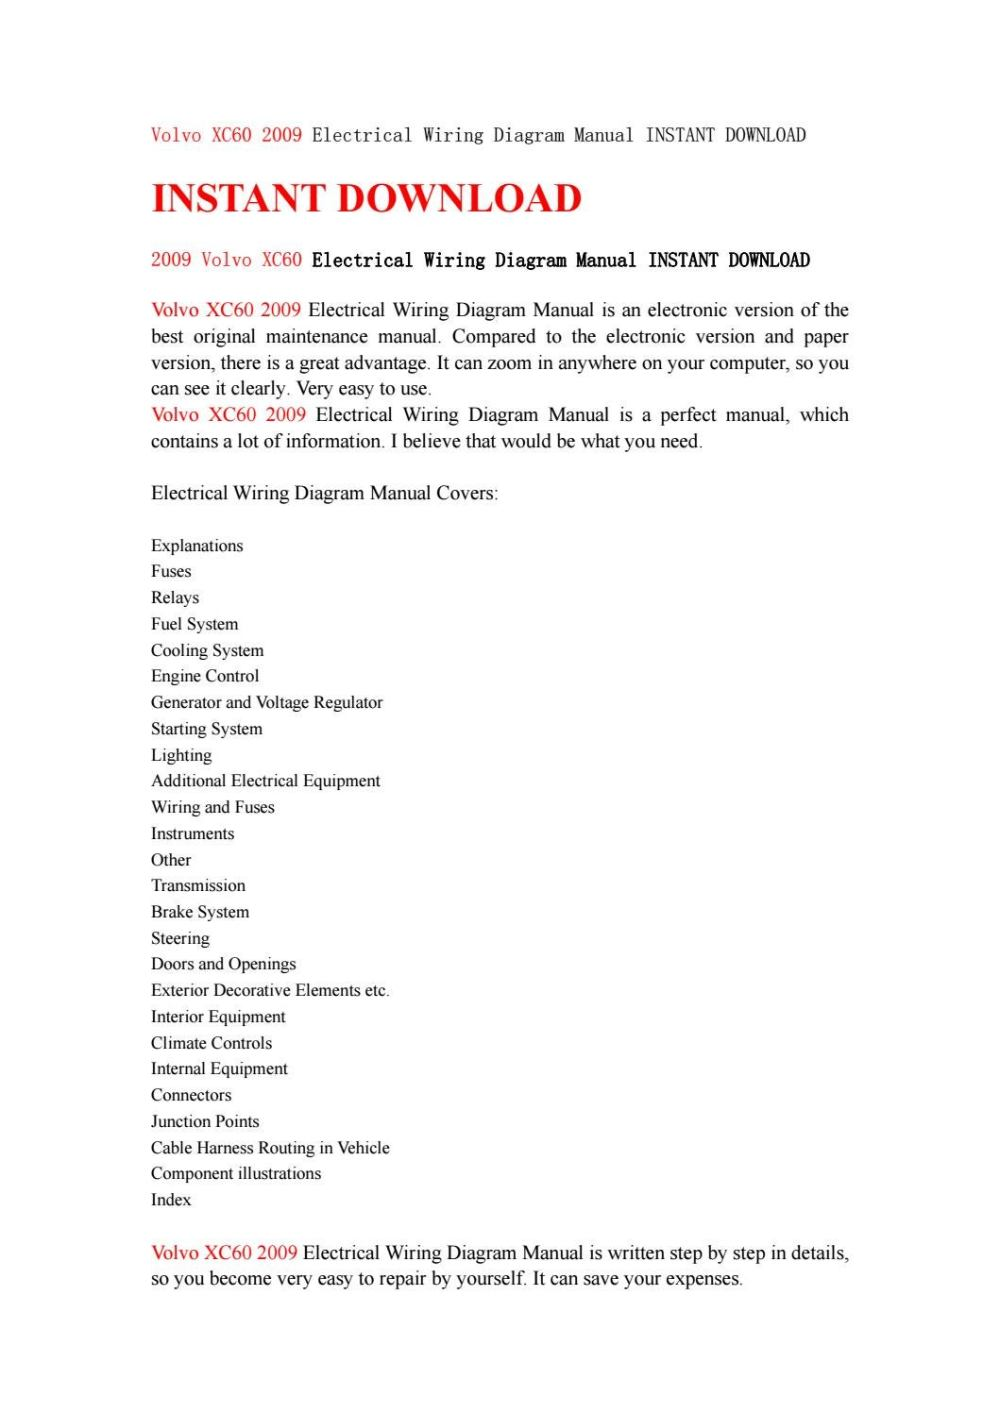 medium resolution of volvo xc60 2009 electrical wiring diagram manual instant download by jhsefn7y6d issuu